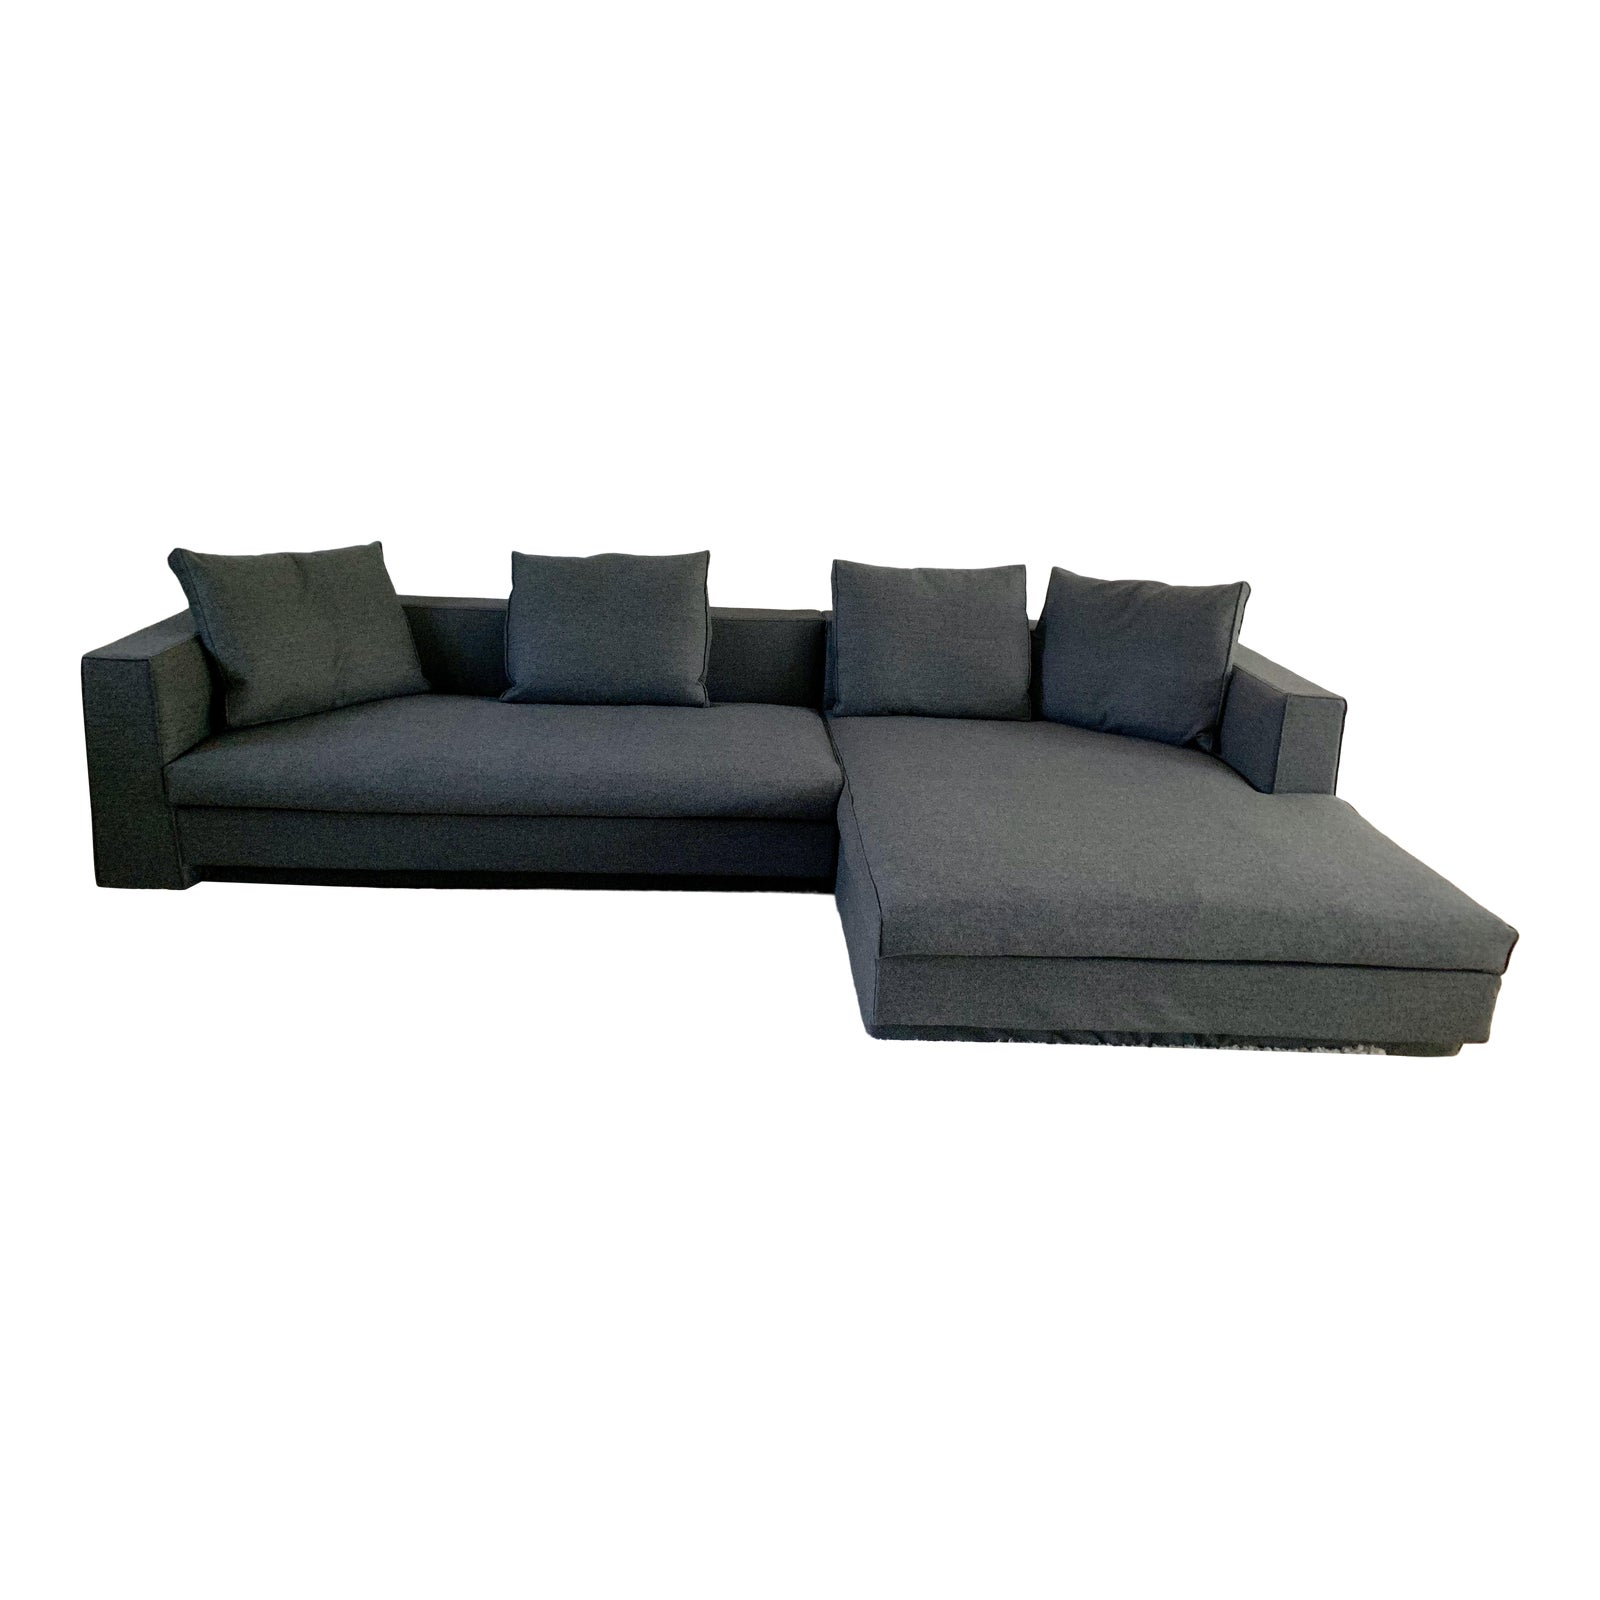 Modern Jens Eilersen Scandinavian Modern Sectional Sofa | Chairish